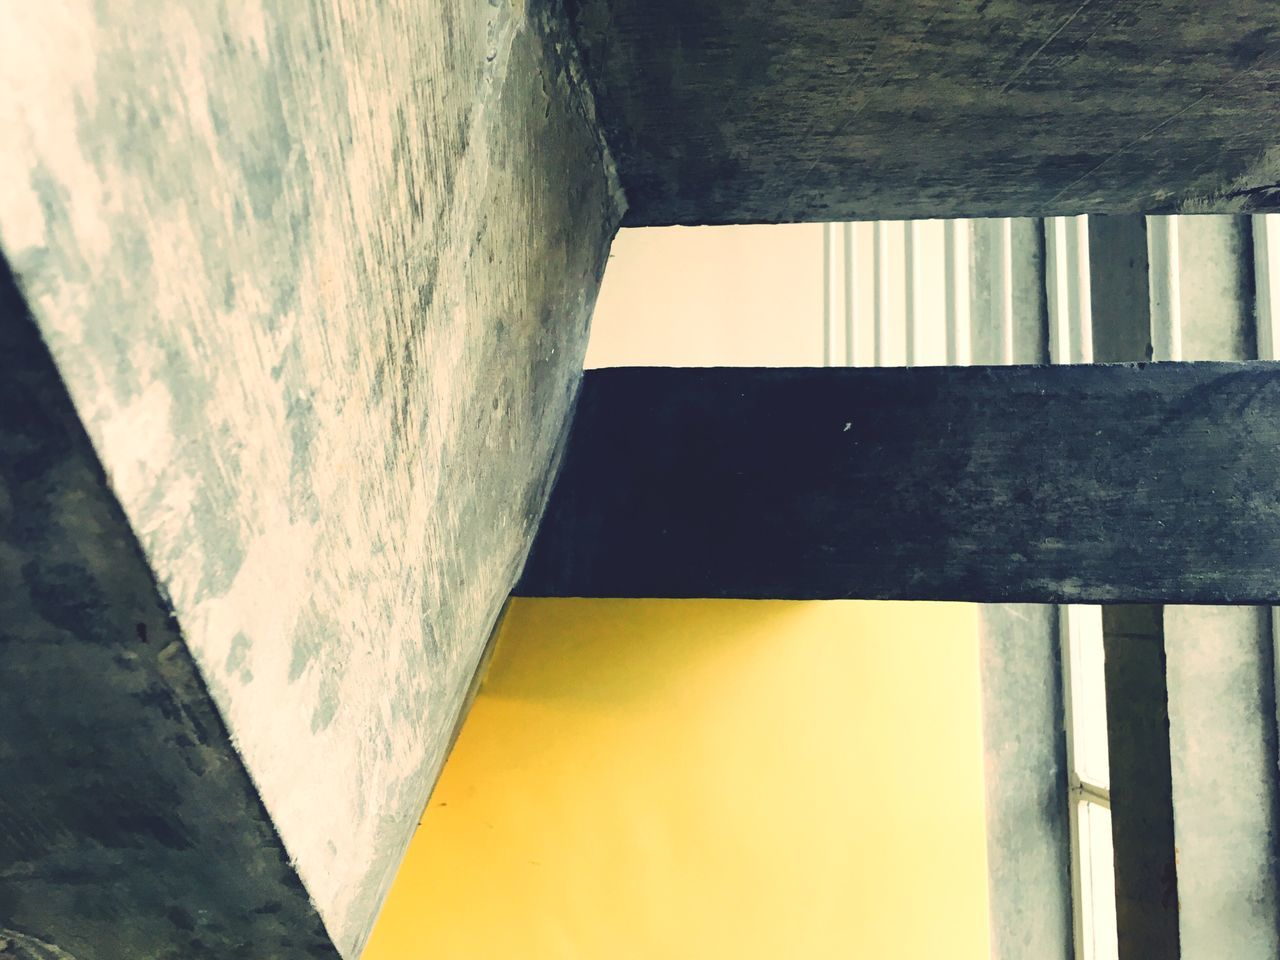 Shape V Shape Stair Window Fire Escape Yellow Concrete Stair Concrete Stairs Concrete Steps Shapes Shapes , Lines , Forms & Composition Shapes And Lines Letters Fine Art Photography Fine Art Abstract T